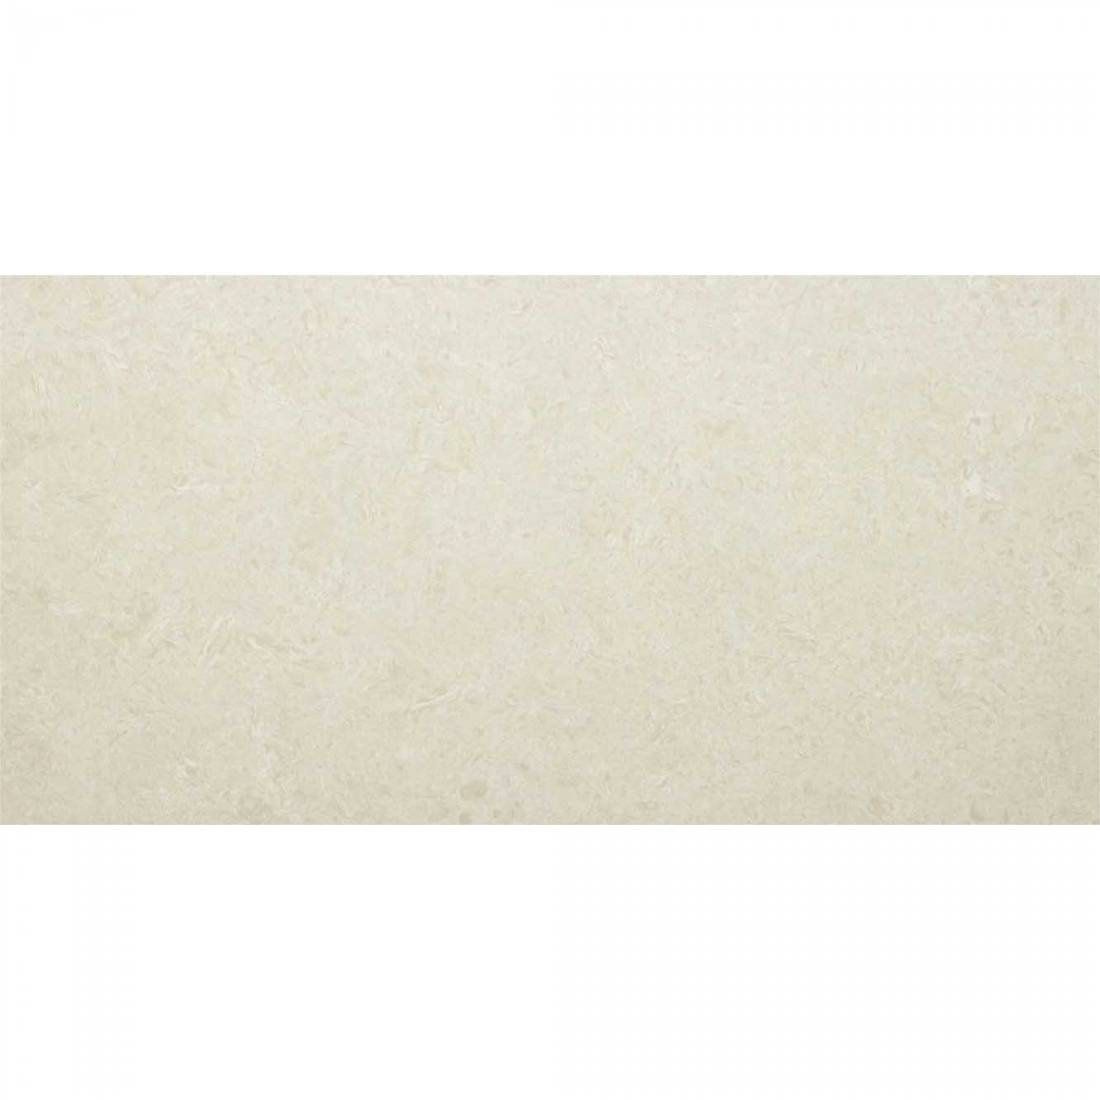 Kyoto 30x60 Cream Polished 1